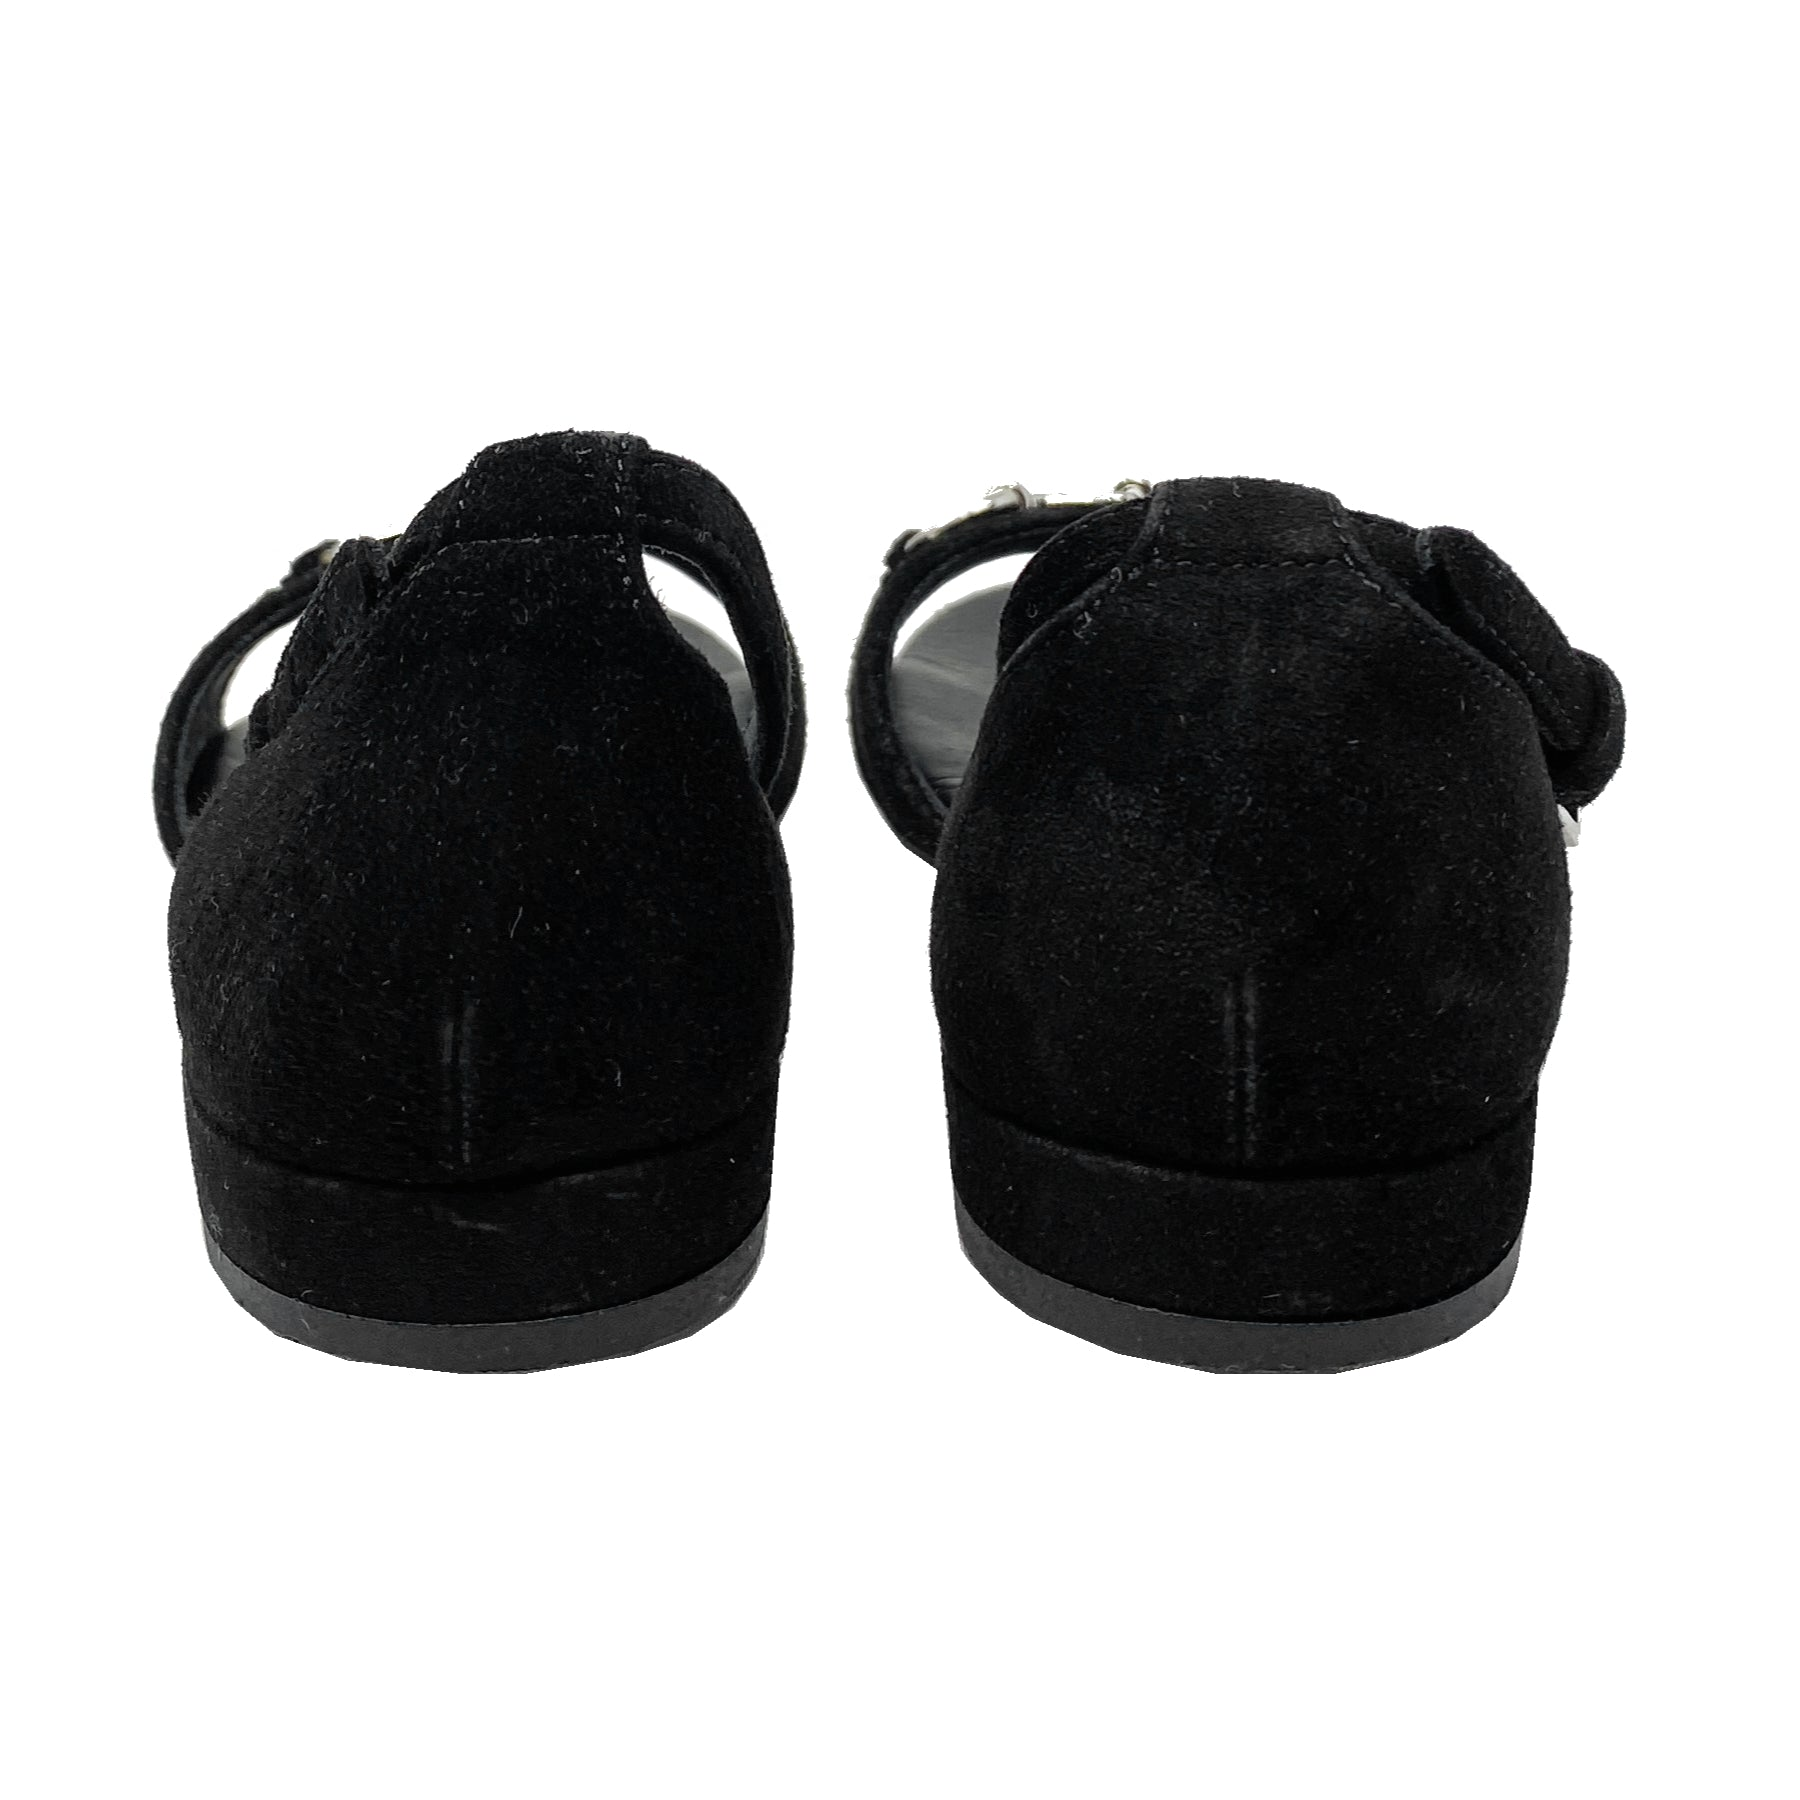 Gucci Girls Toddler Horsebit Suede Sandals Size EU 25